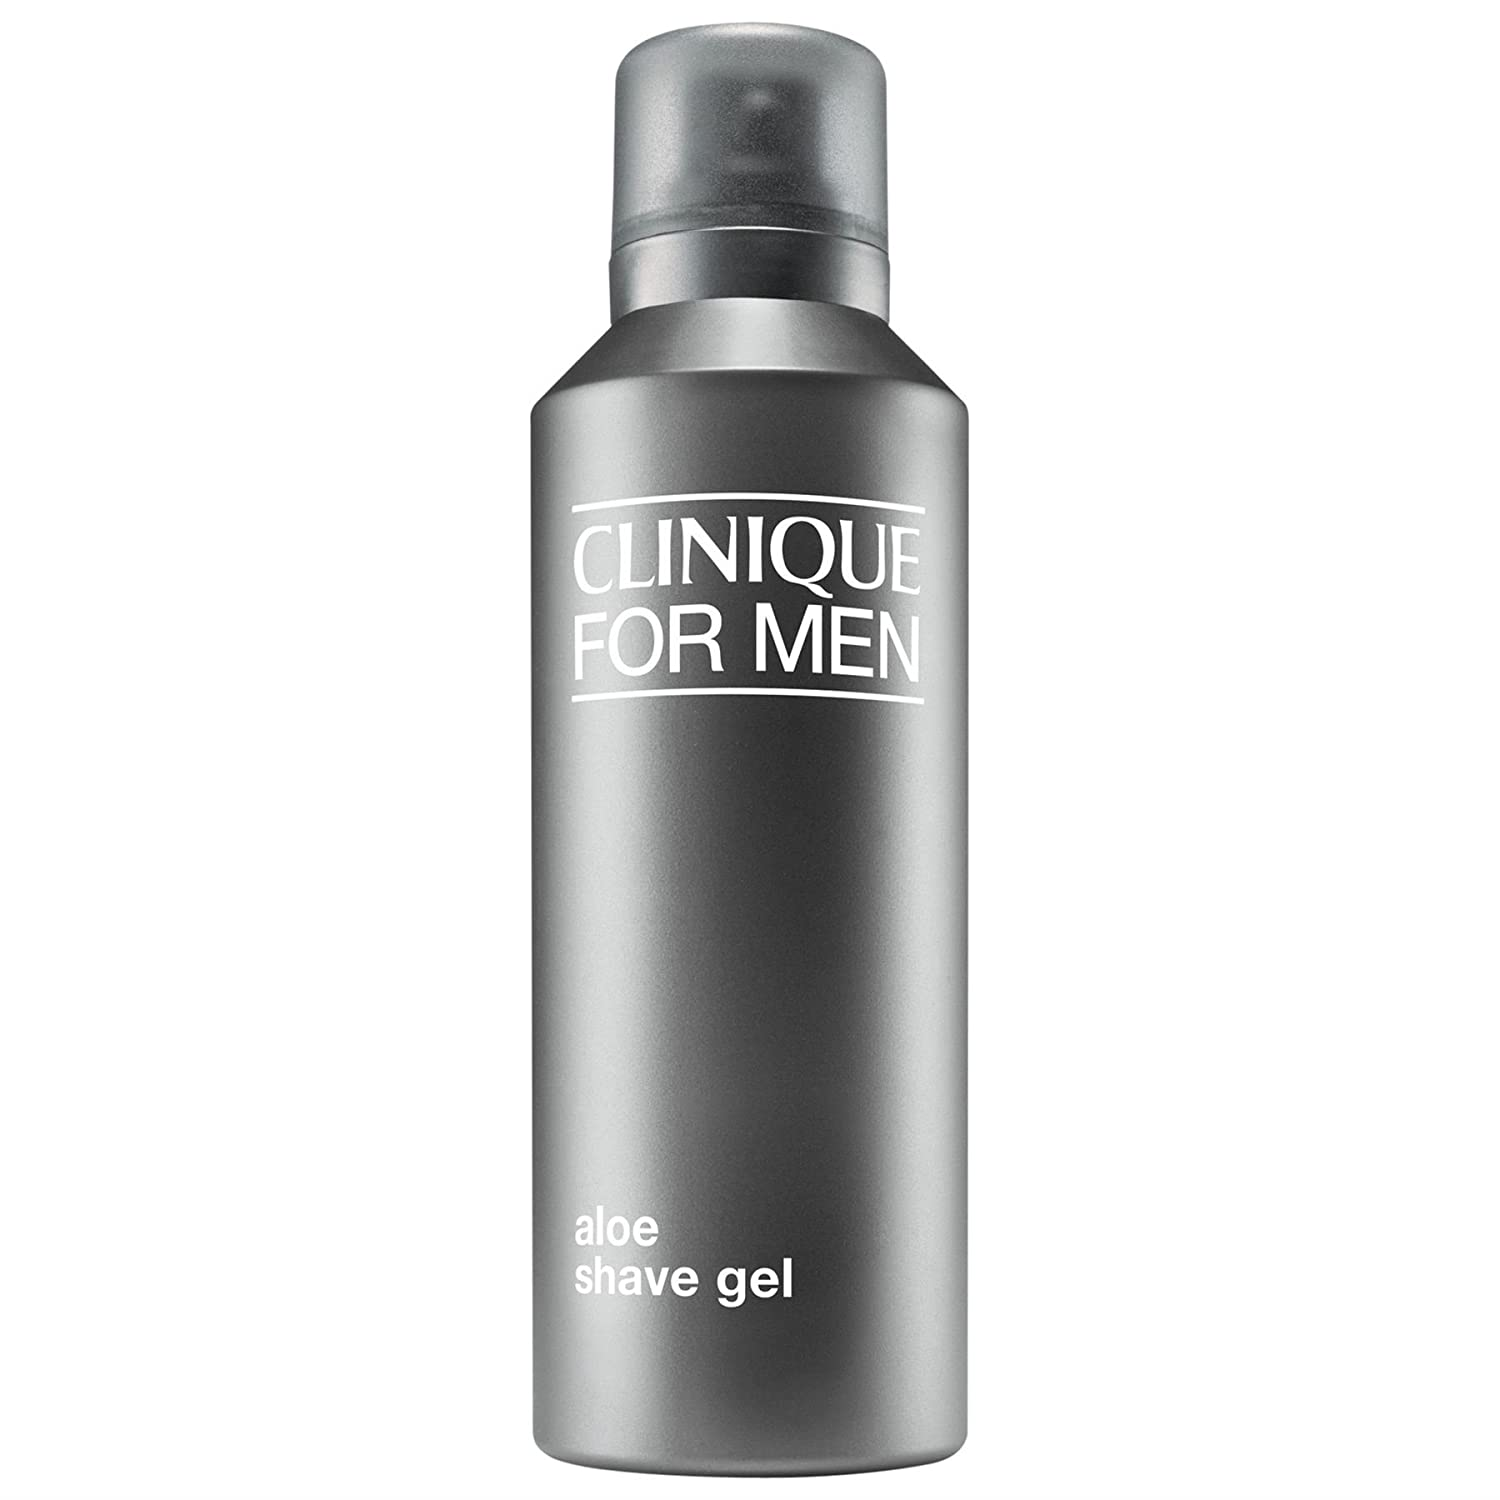 Clinique for Men Aloe Shave Gel 125ml - Pack of 2